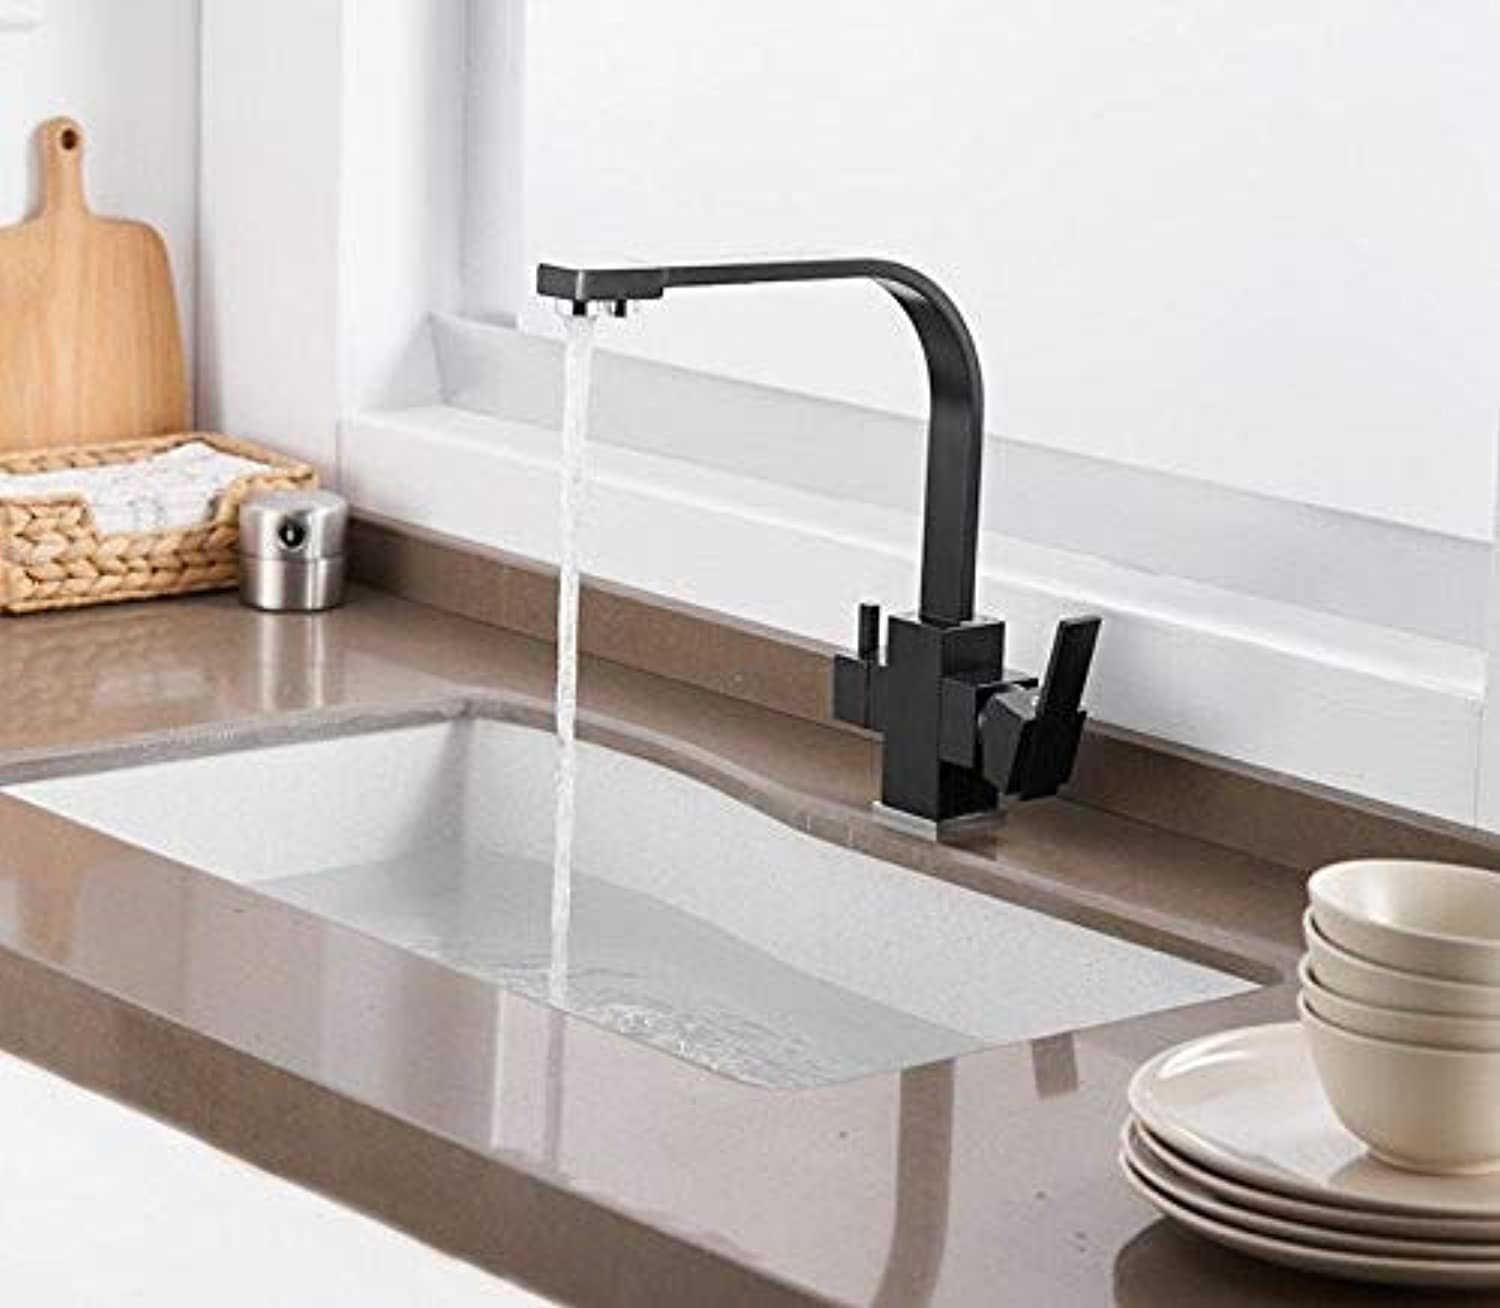 Marcu HOME Taps Black Square Kitchen Faucets 360 Degree redation Tap Water Faucets Solid Brass Kitchen Sink Tap Water Mixer Taps